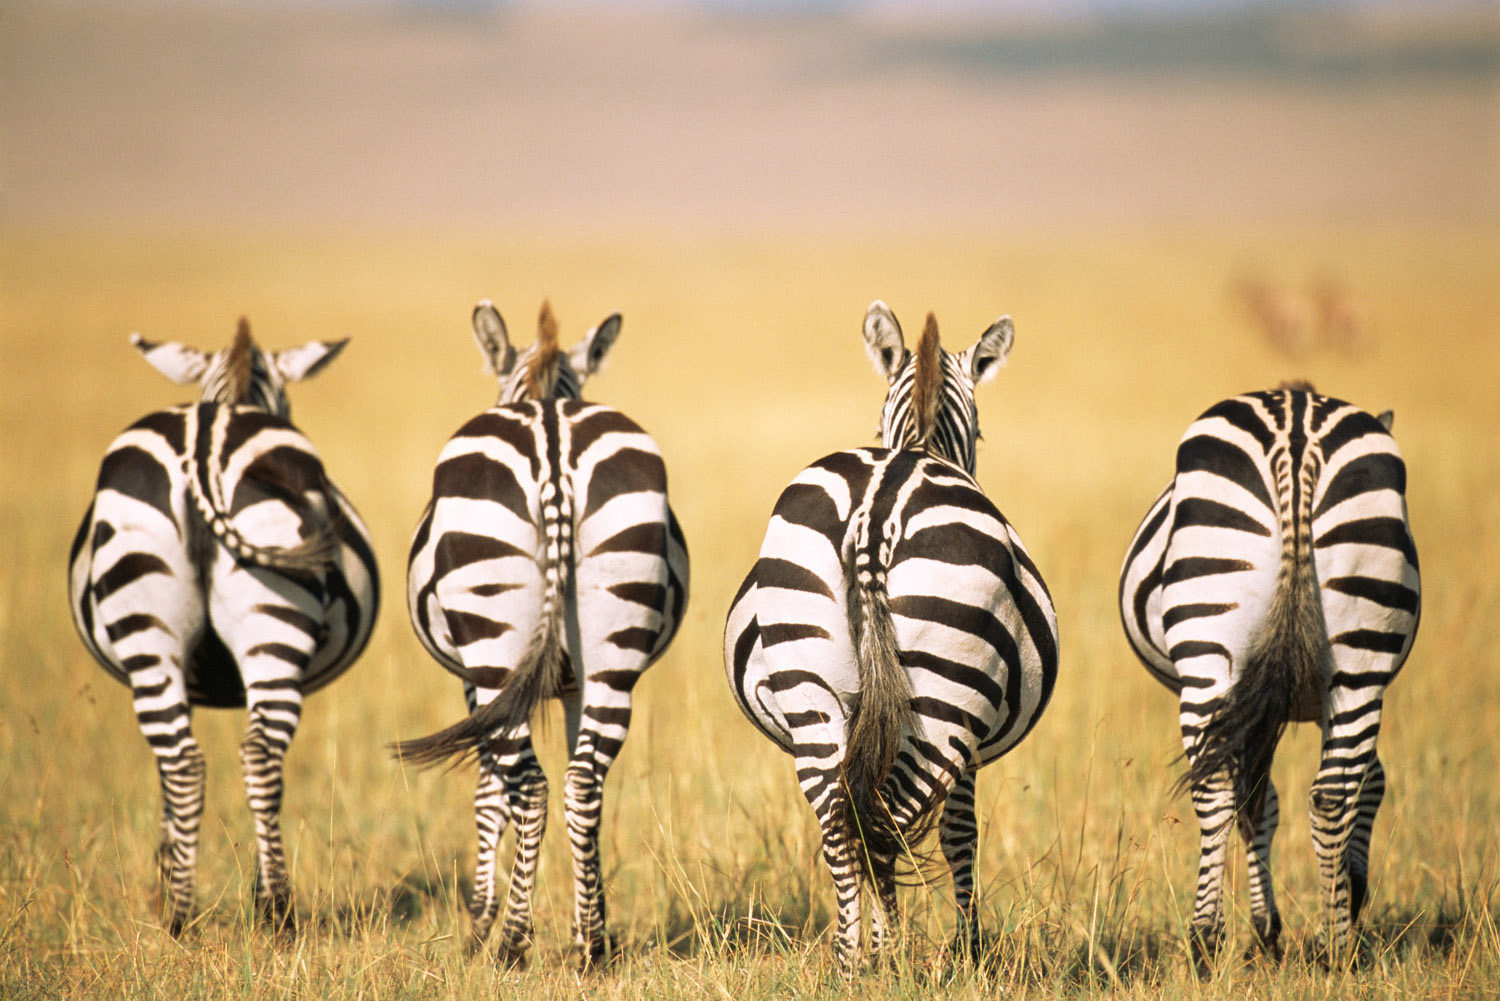 Common zebra behinds, Masai Mara National Reserve, Kenya